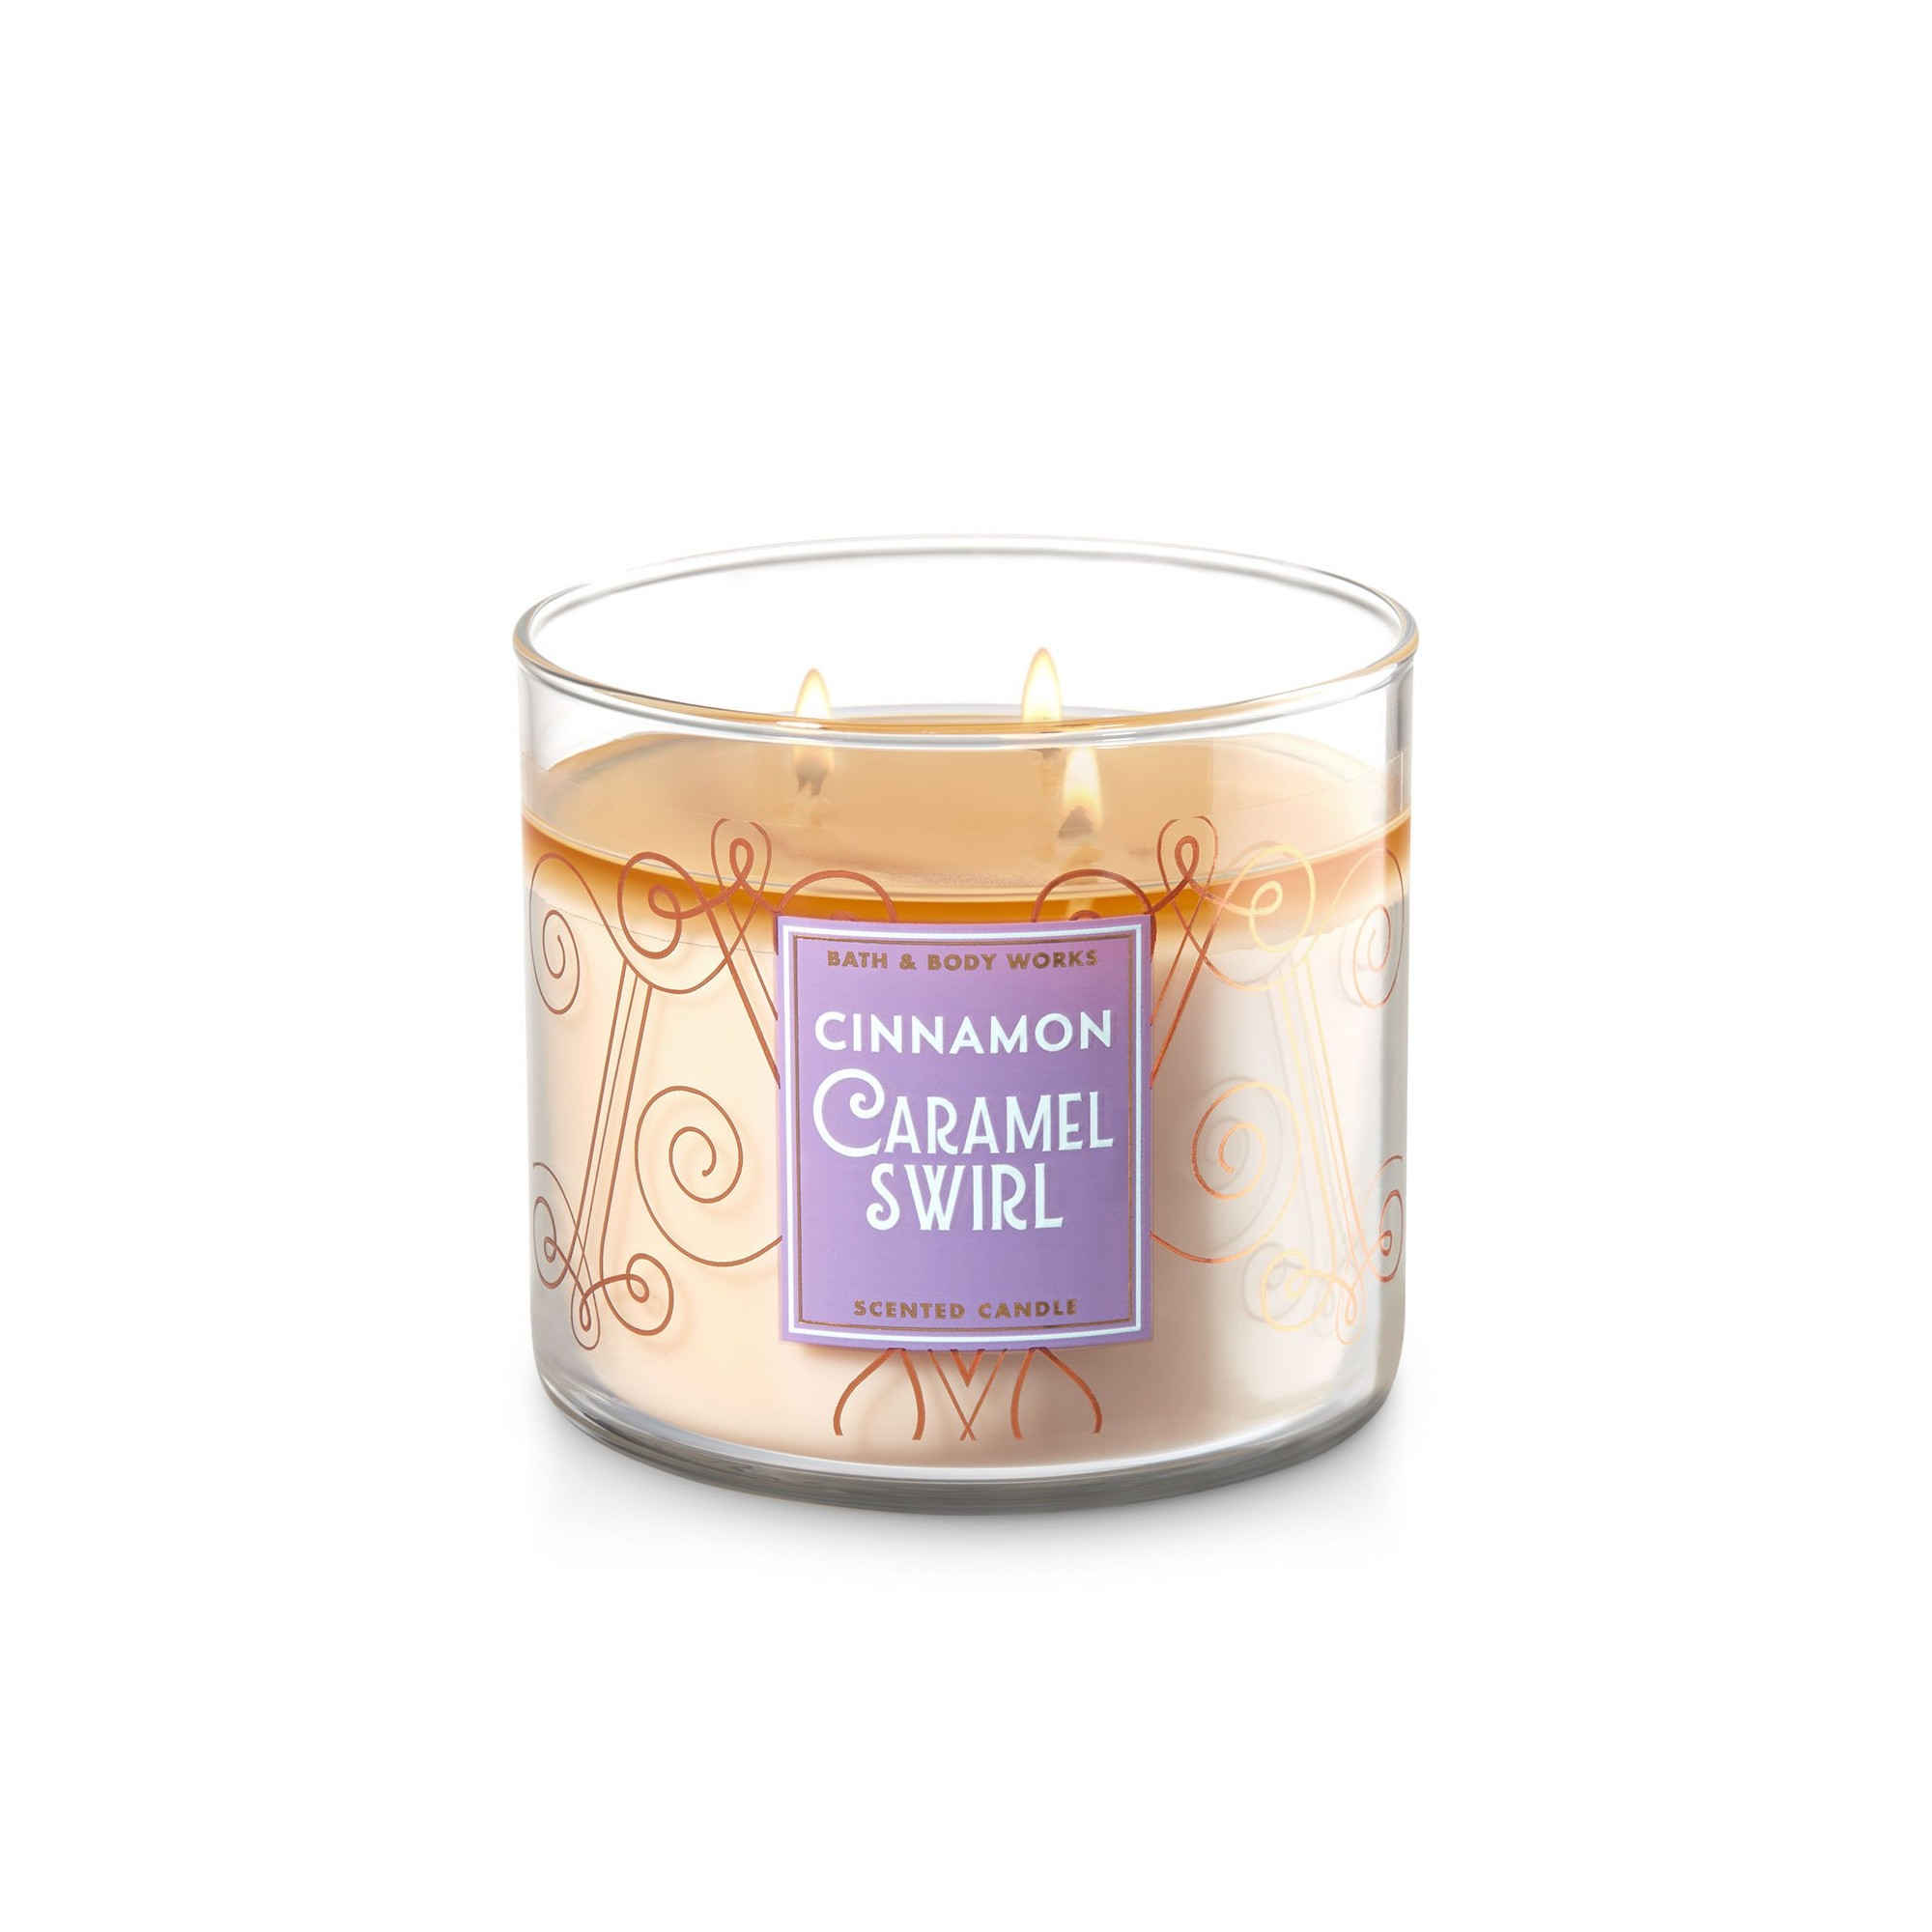 Bath & Body Works Cinnamon Caramel Swirl 3 Wick Scented Candle